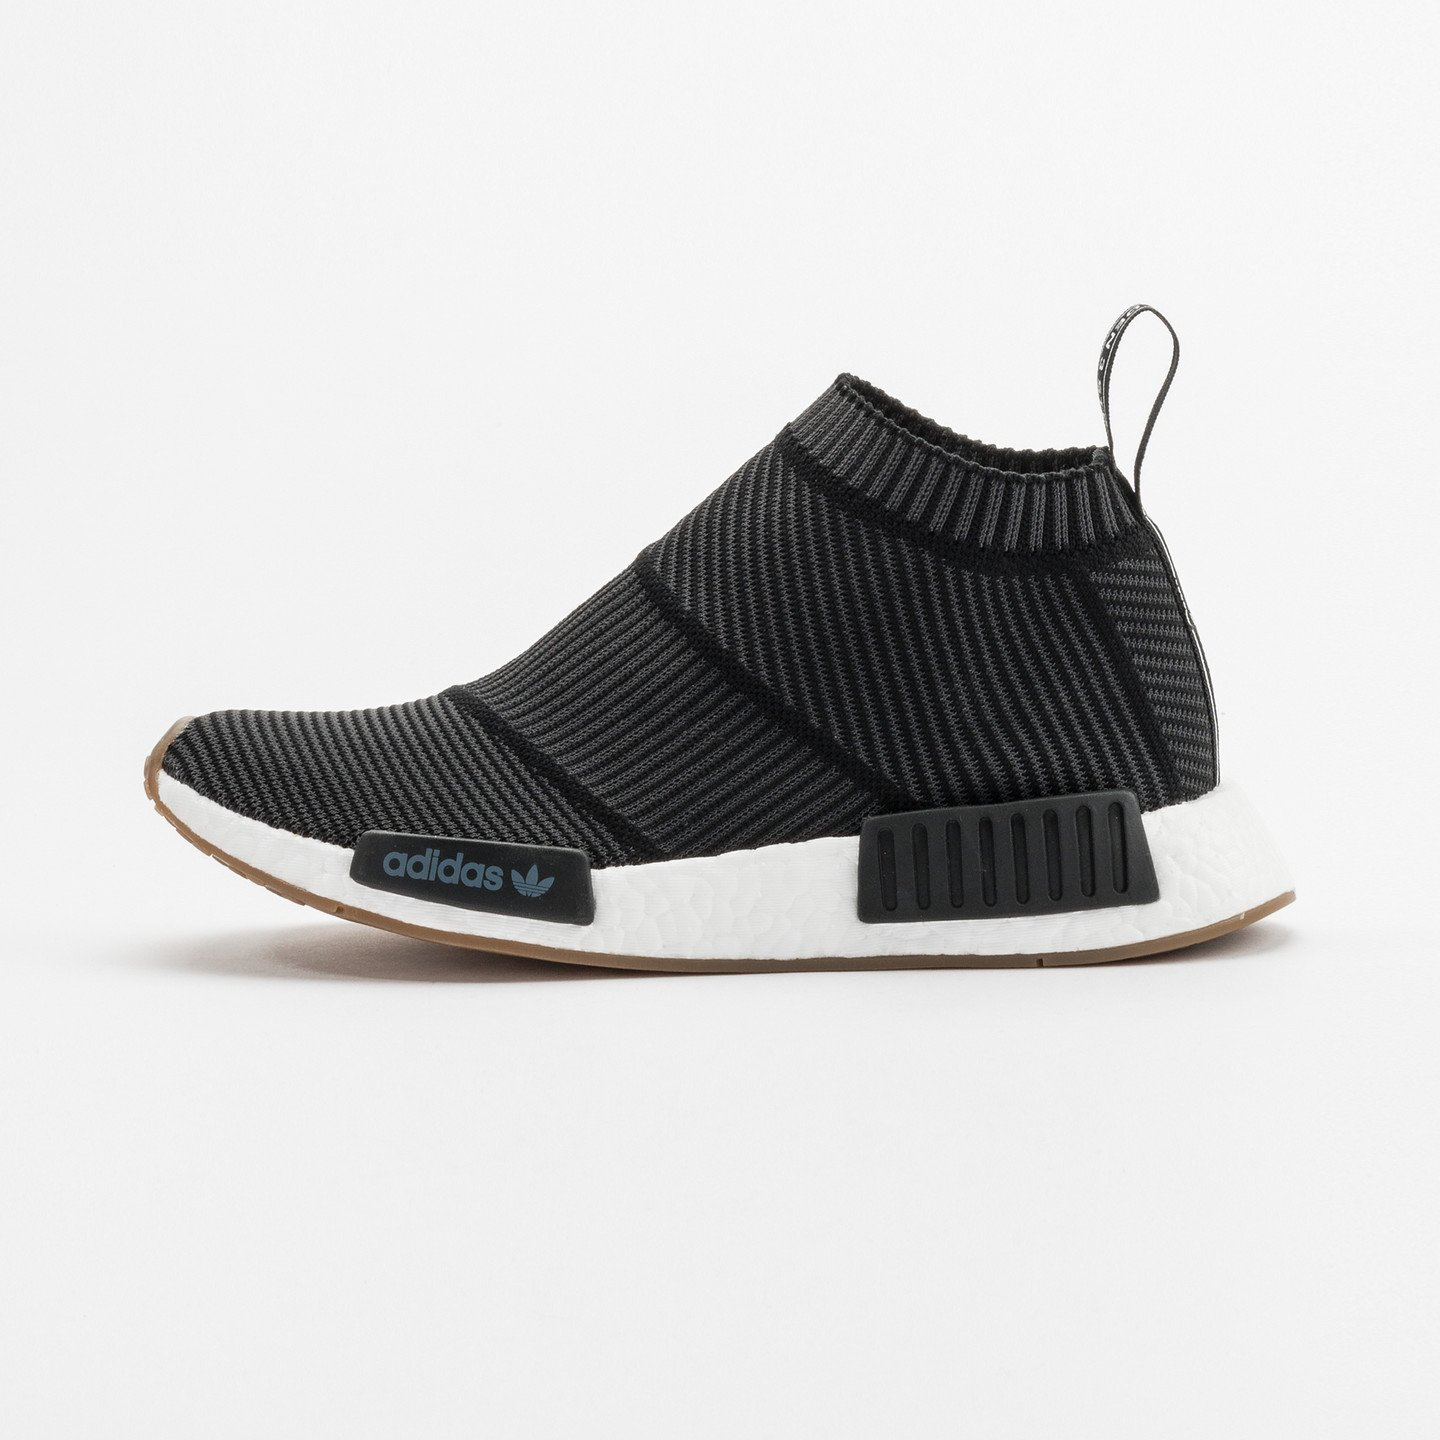 Adidas NMD CS1 City Sock Boost Primeknit Core Black / Gum BA7209-38